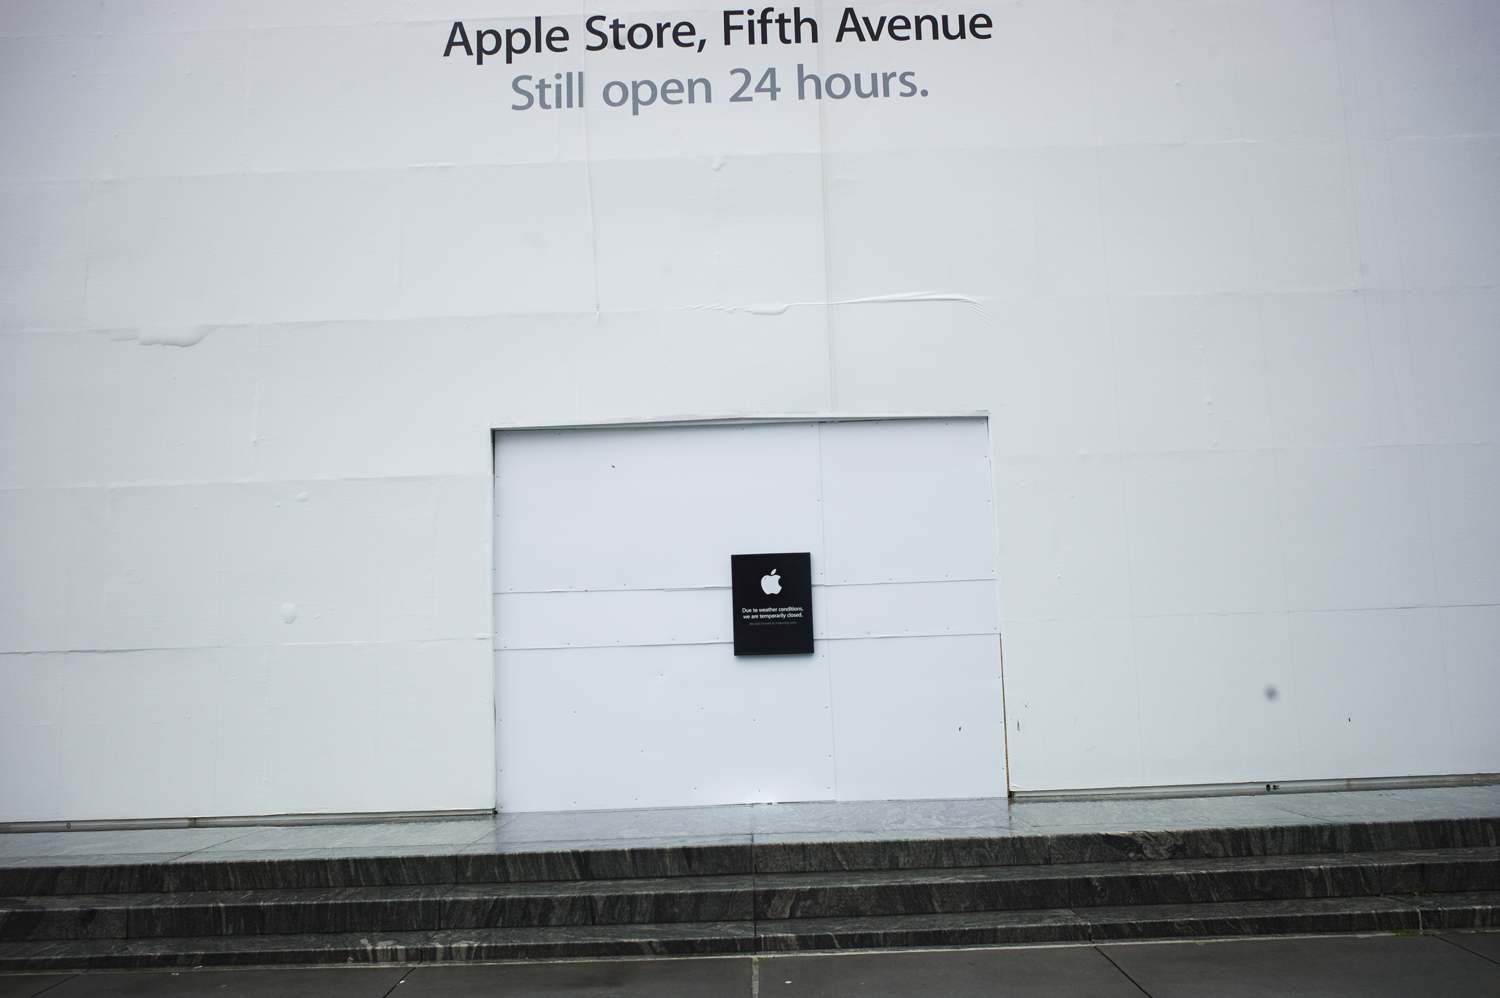 August 28, 2011, New York, NY. A sign outside of the boarded-up Apple store on Fifth Avenue.